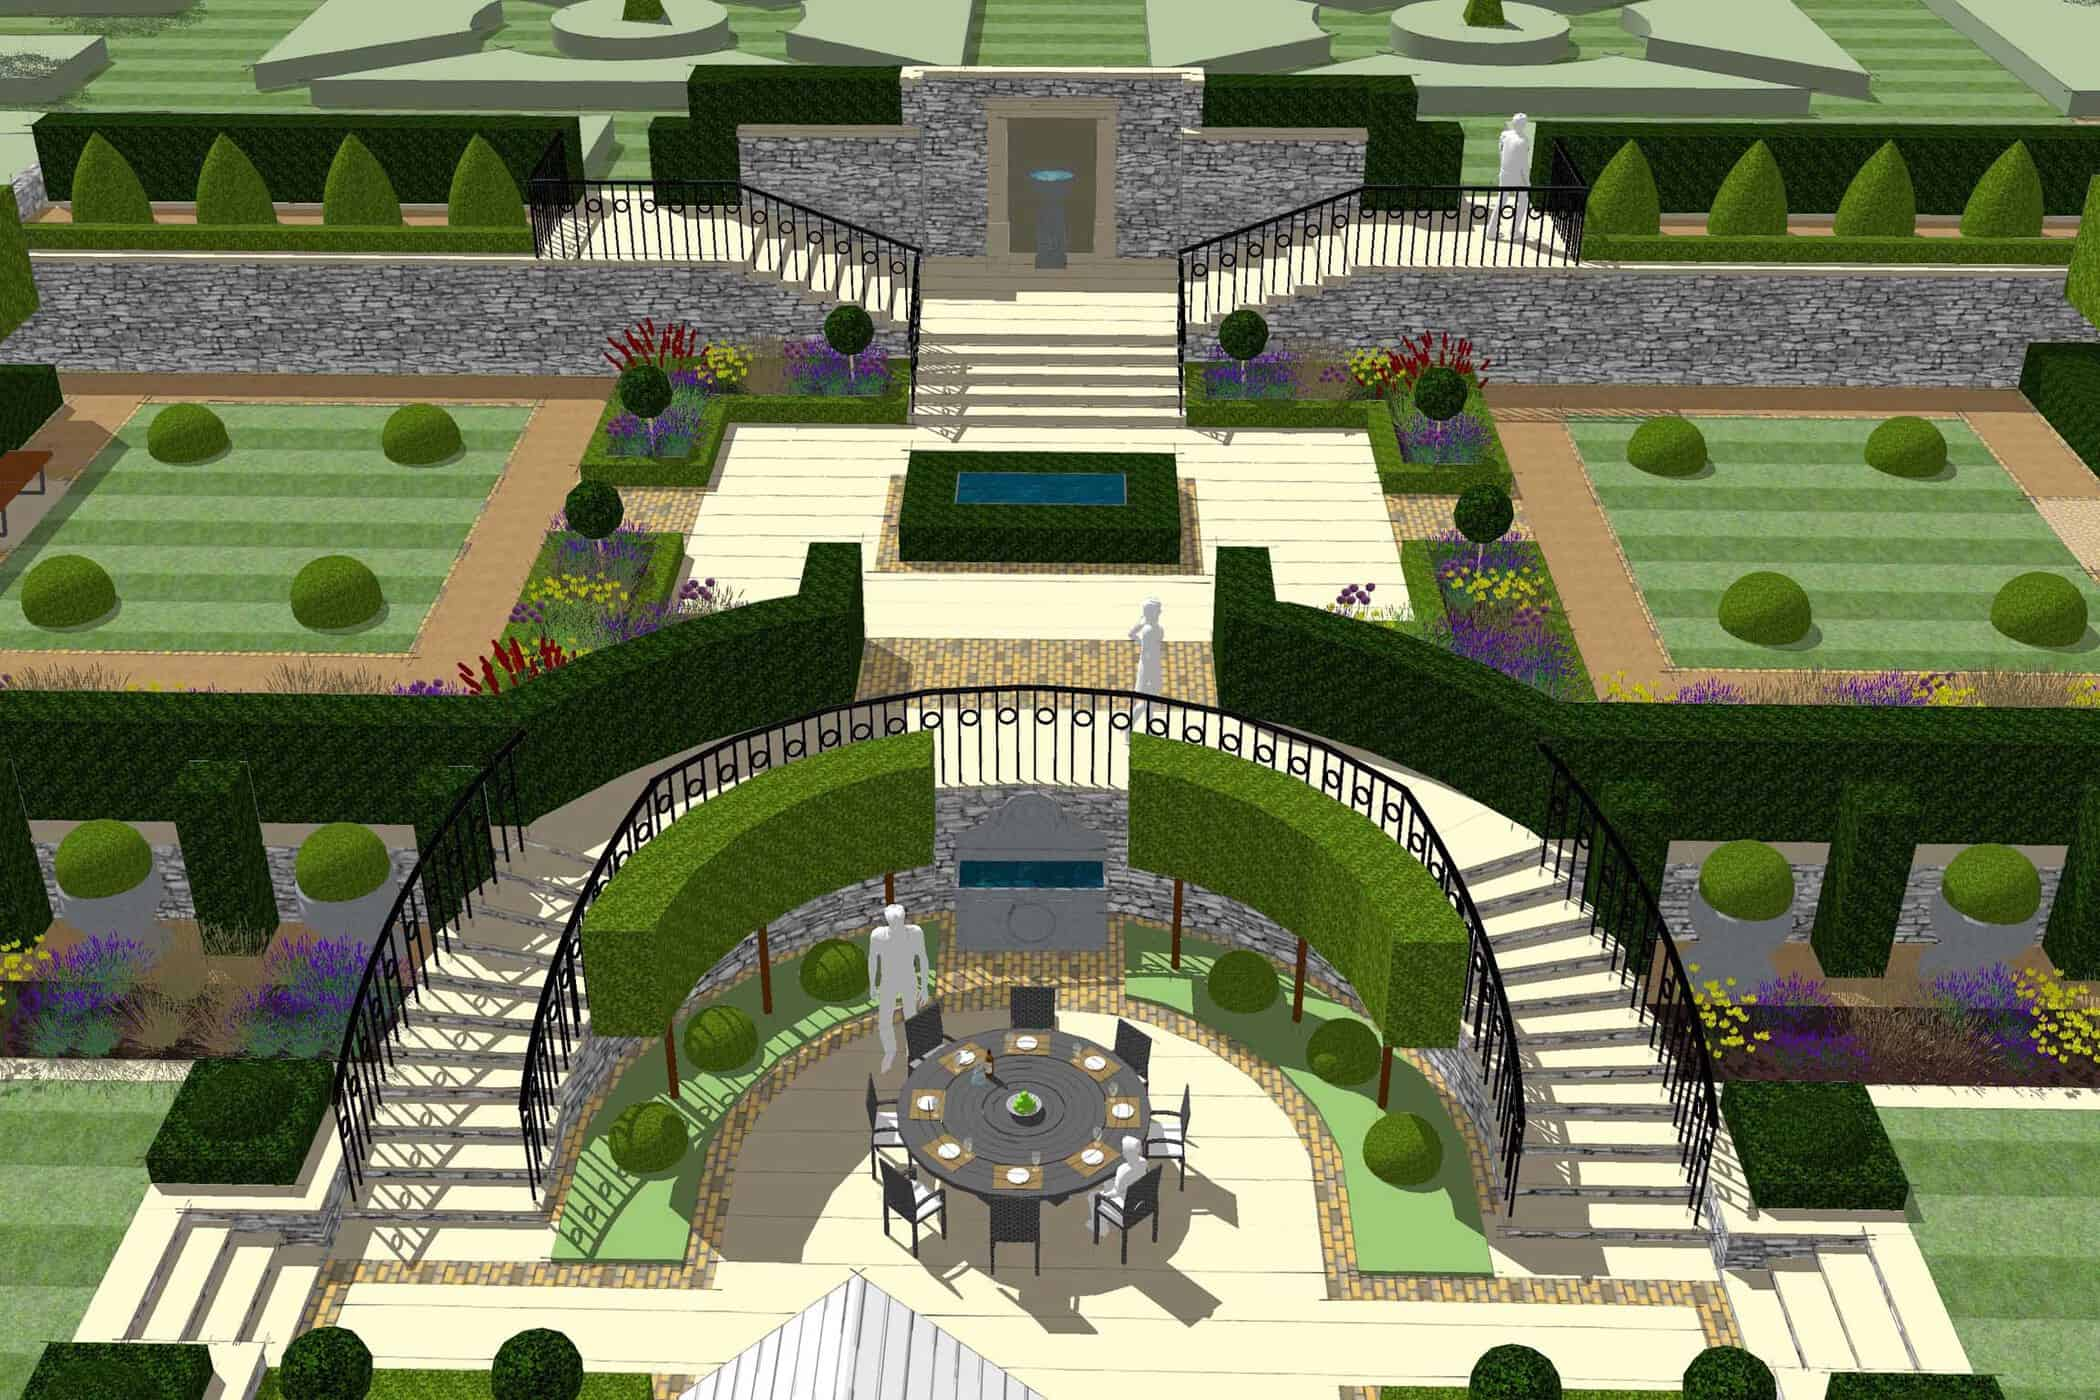 Formal Garden-bestall & co